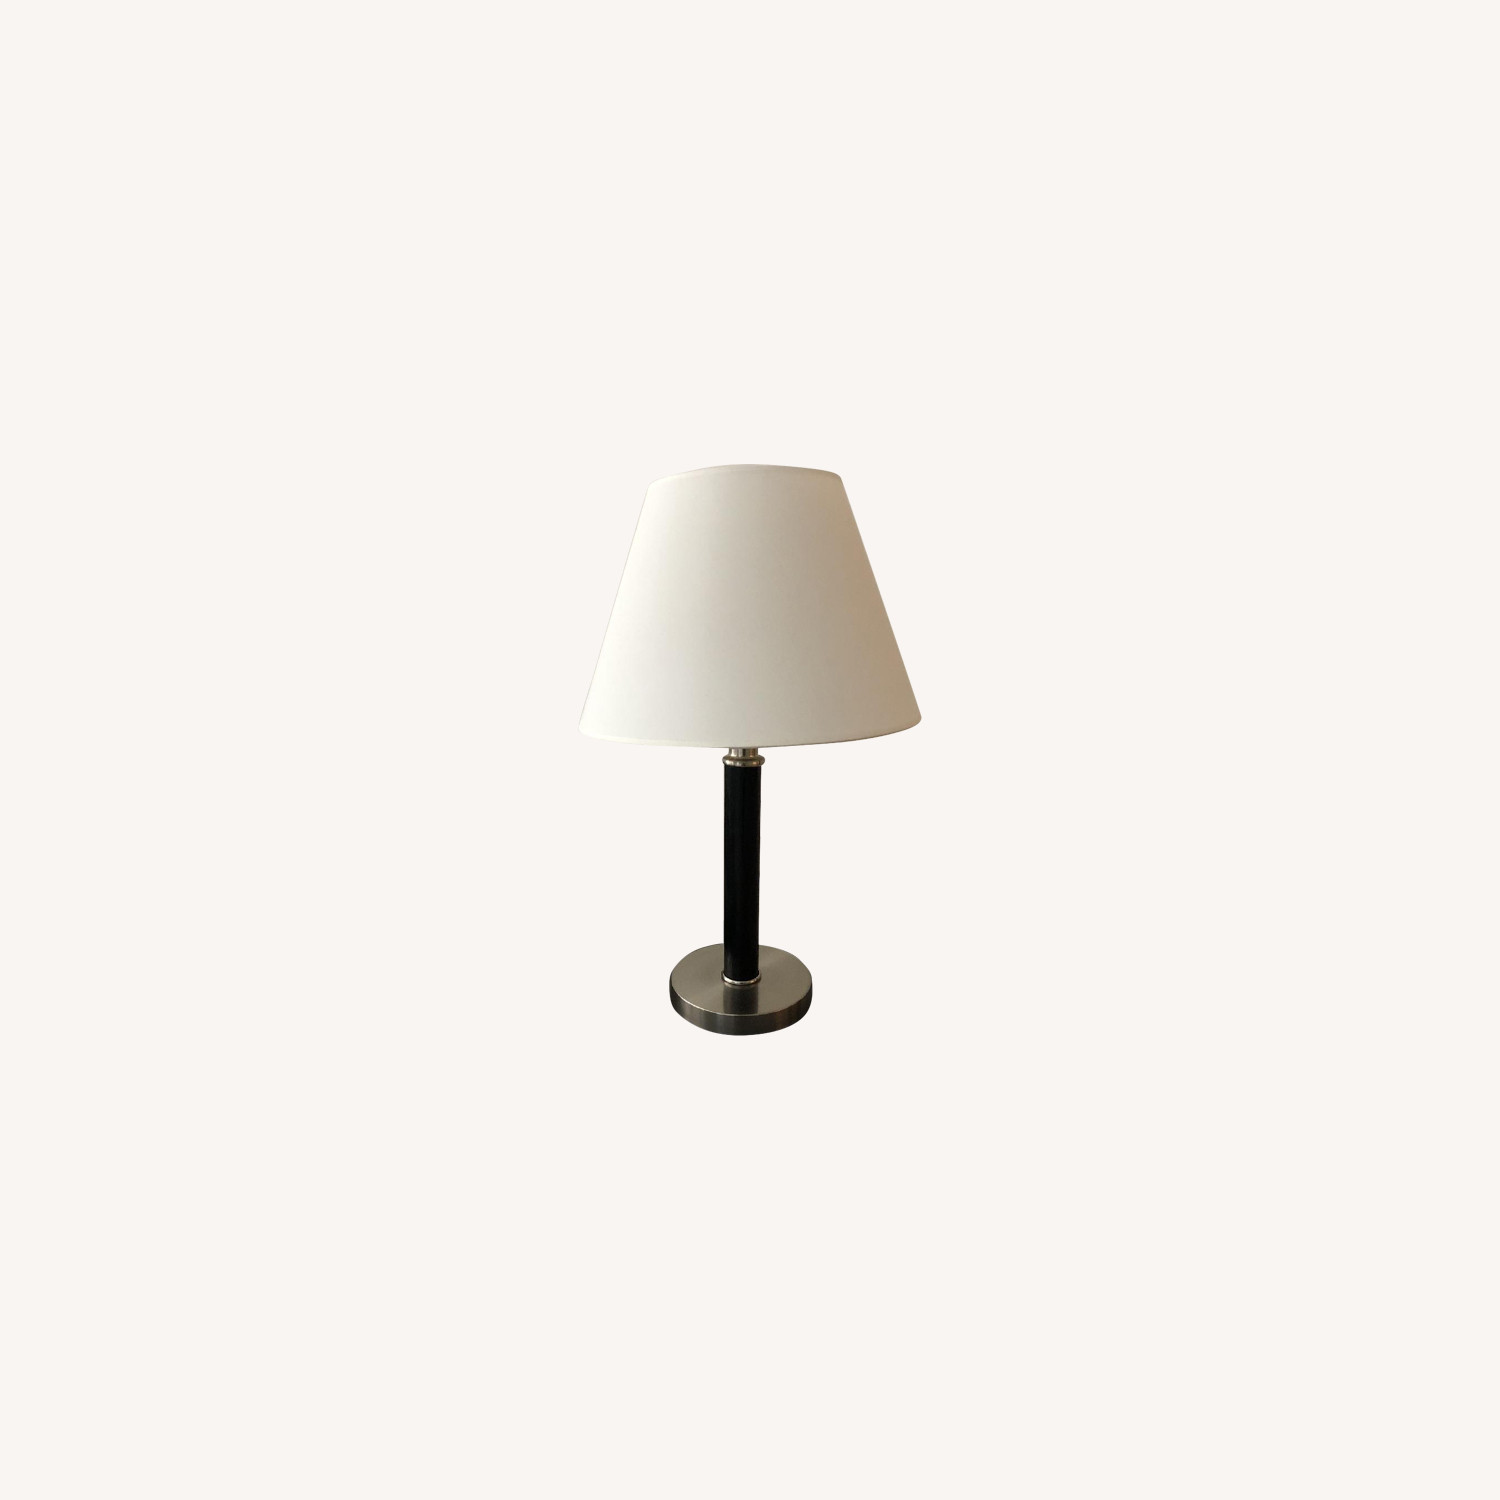 Ethan Allen Chrome Table Lamp in Wood Finish